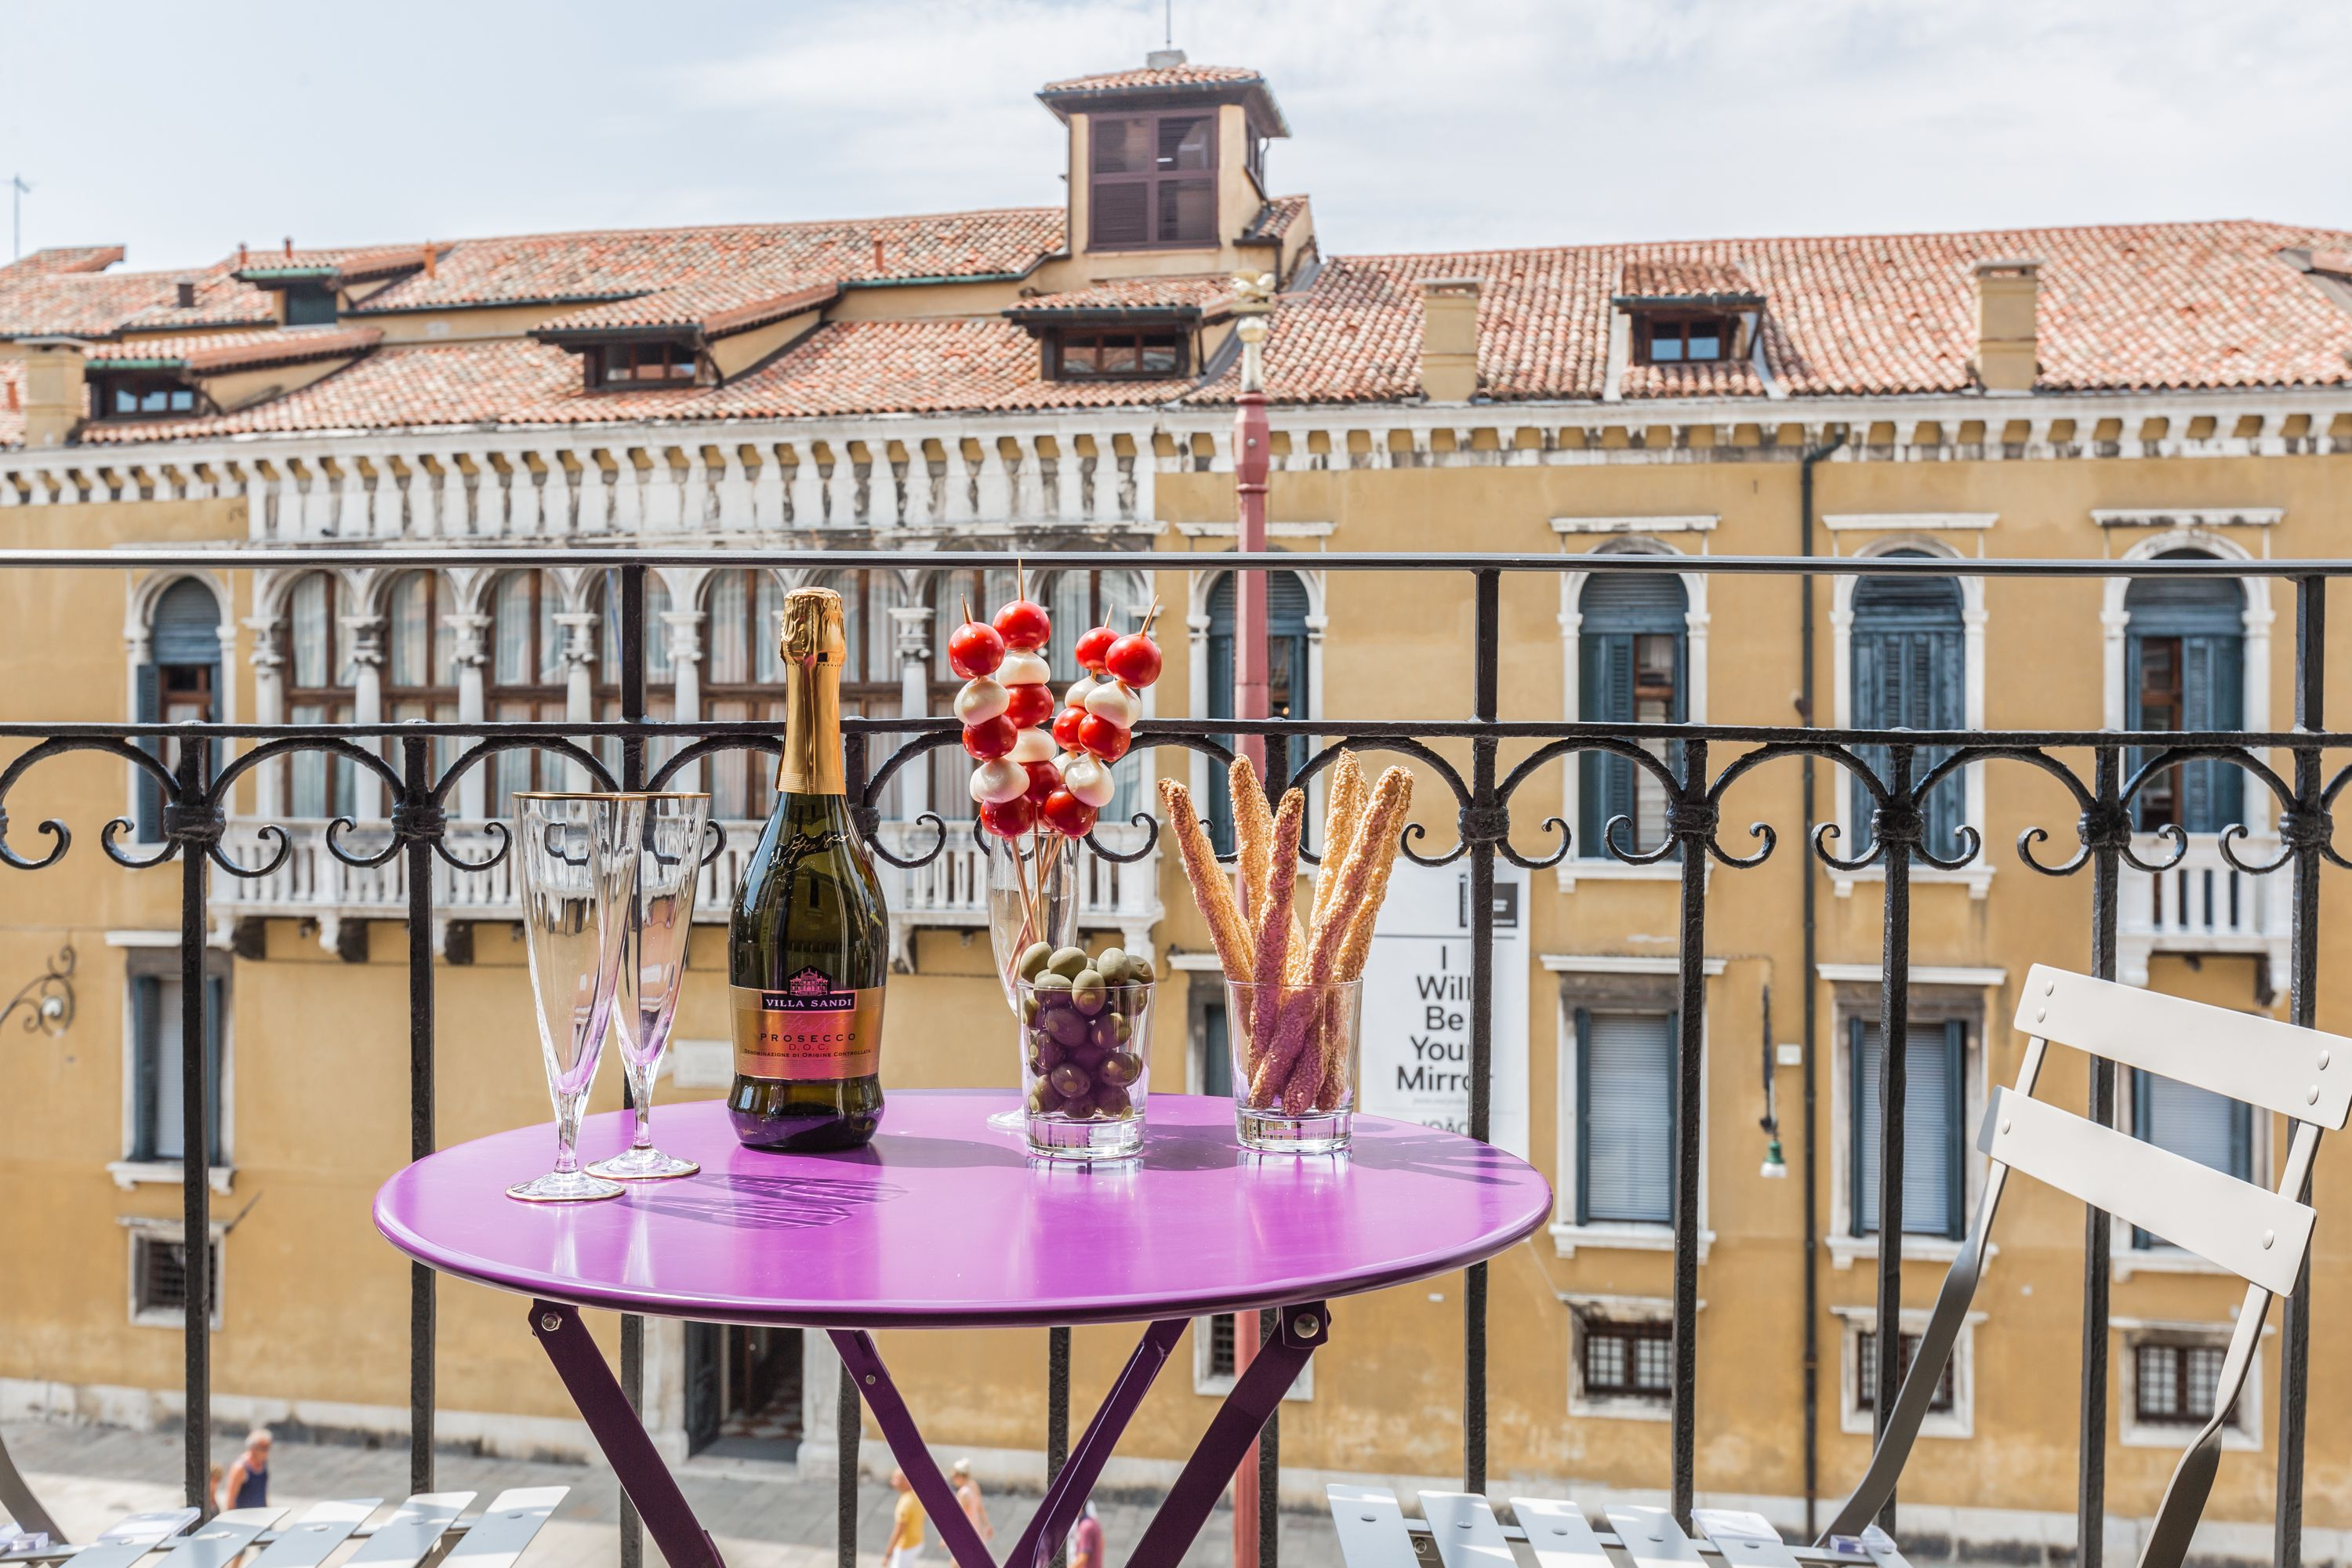 enjoy an aperitive with view at the Manin apartment!